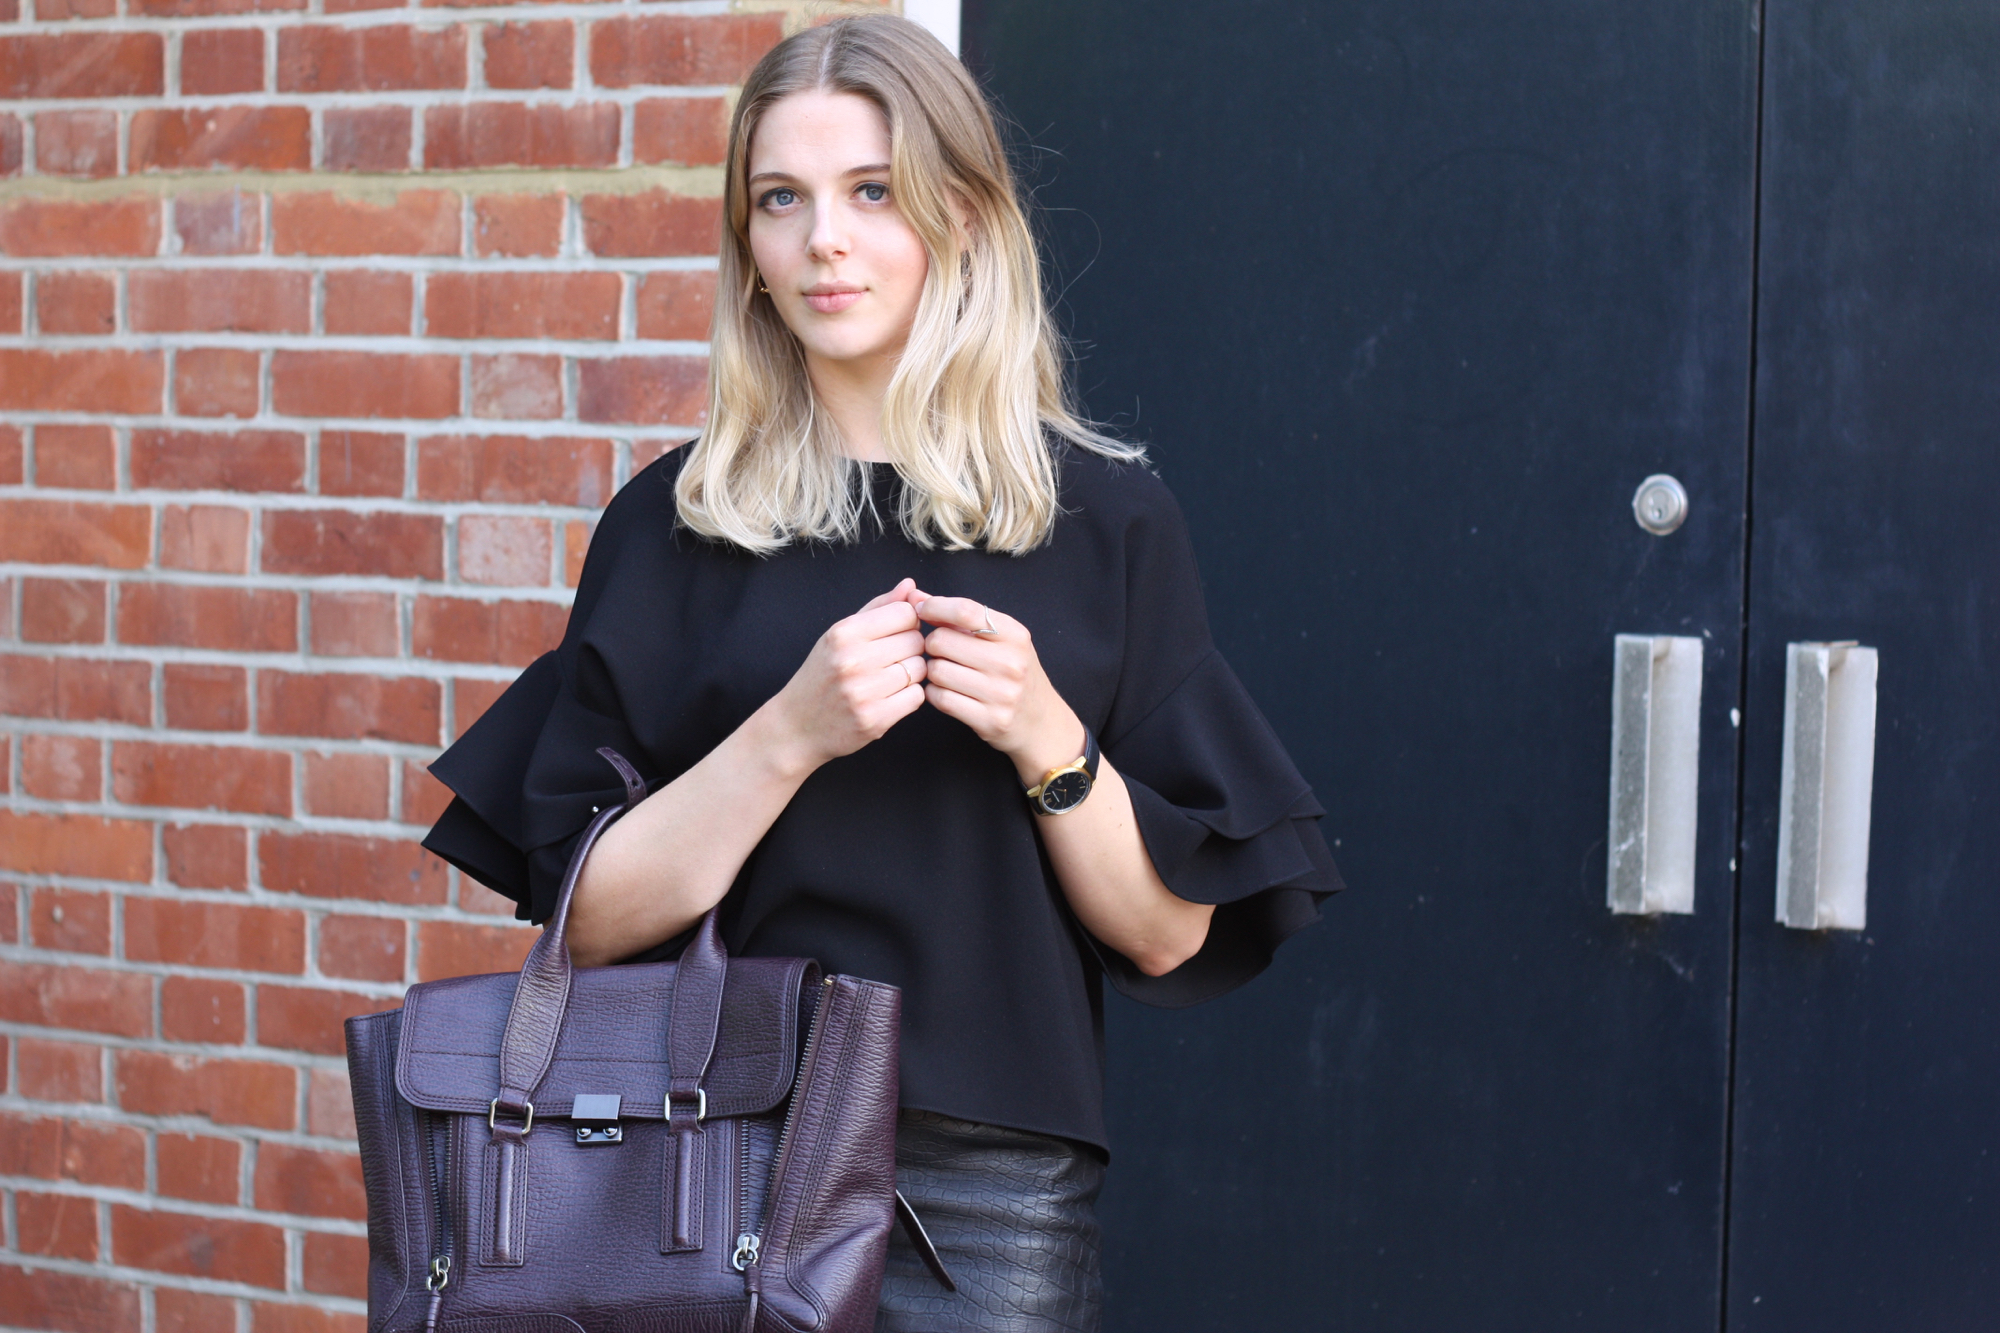 Zara frilled top, 3.1 Phillip Lim Pashli medium burgundy bag and Larsson & Jennings Saxon black gold watch